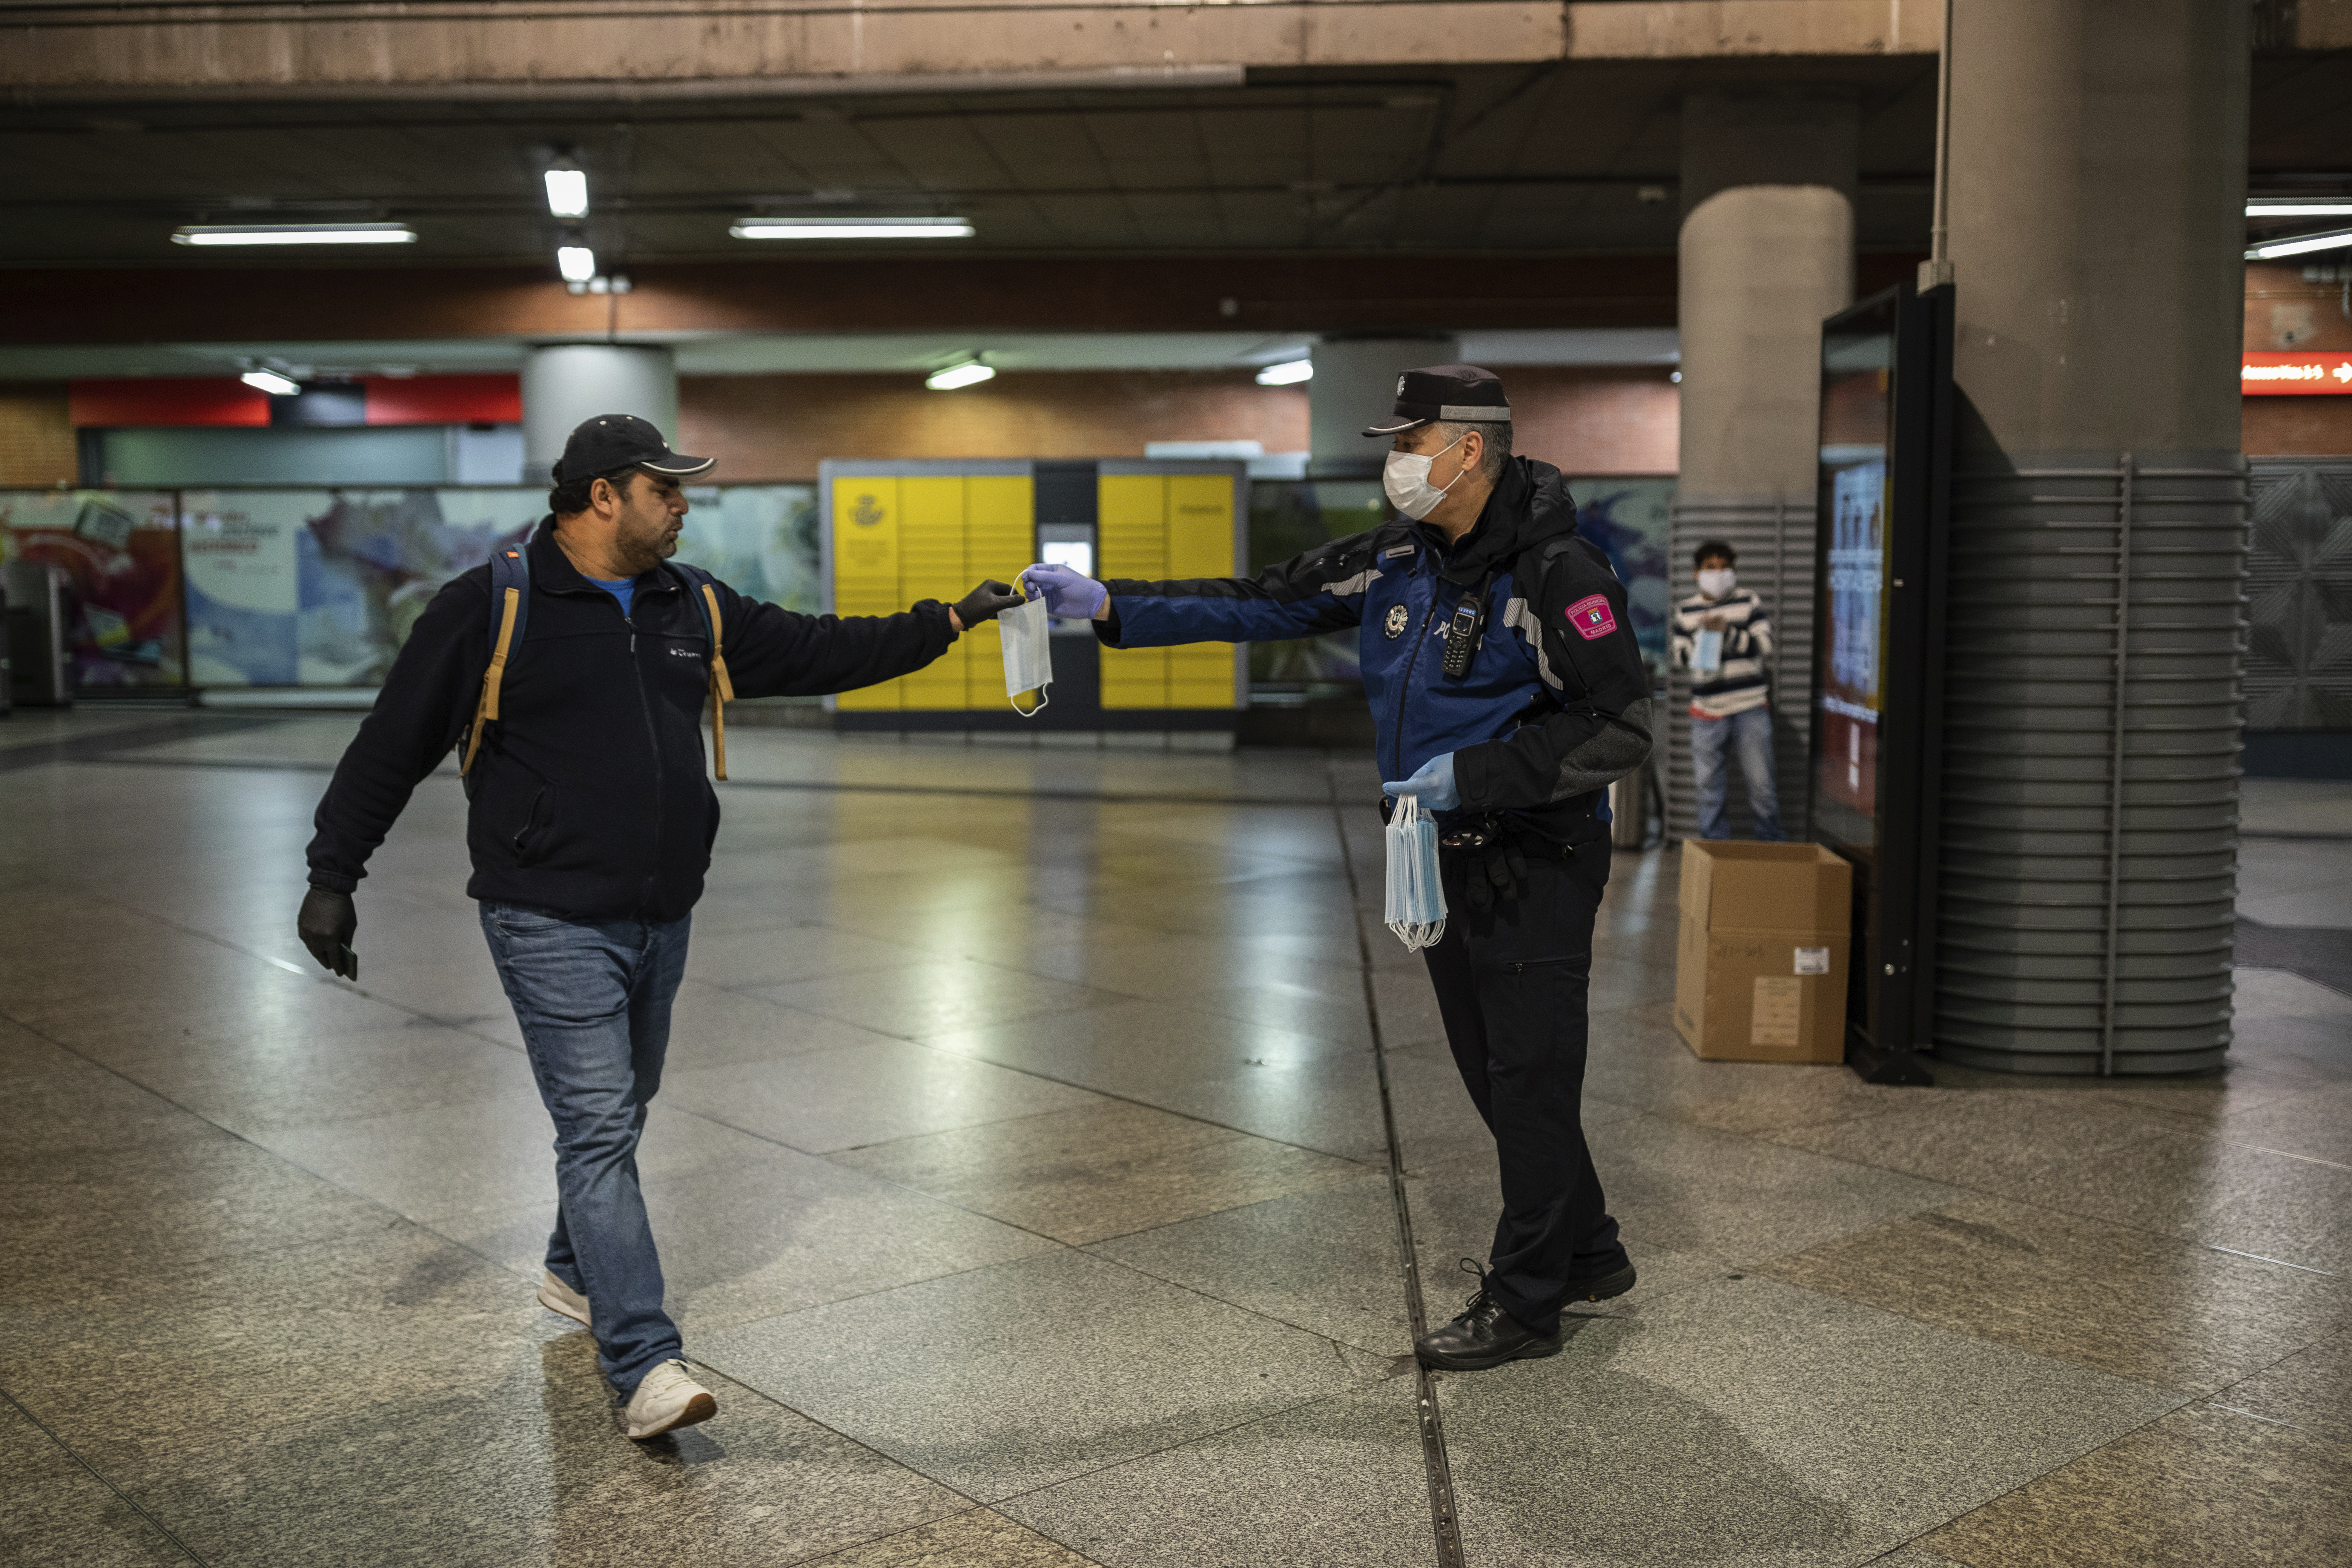 A local police distributes face masks to commuters at Atocha train station during the coronavirus outbreak in Madrid, Spain, Monday, April 13, 2020. Confronting both a public health emergency and long-term economic injury, Spain is cautiously re-starting some business activity to emerge from the nationwide near-total freeze that helped slow the country's grim coronavirus outbreak. The new coronavirus causes mild or moderate symptoms for most people, but for some, especially older adults and people with existing health problems, it can cause more severe illness or death. (AP Photo/Bernat Armangue)